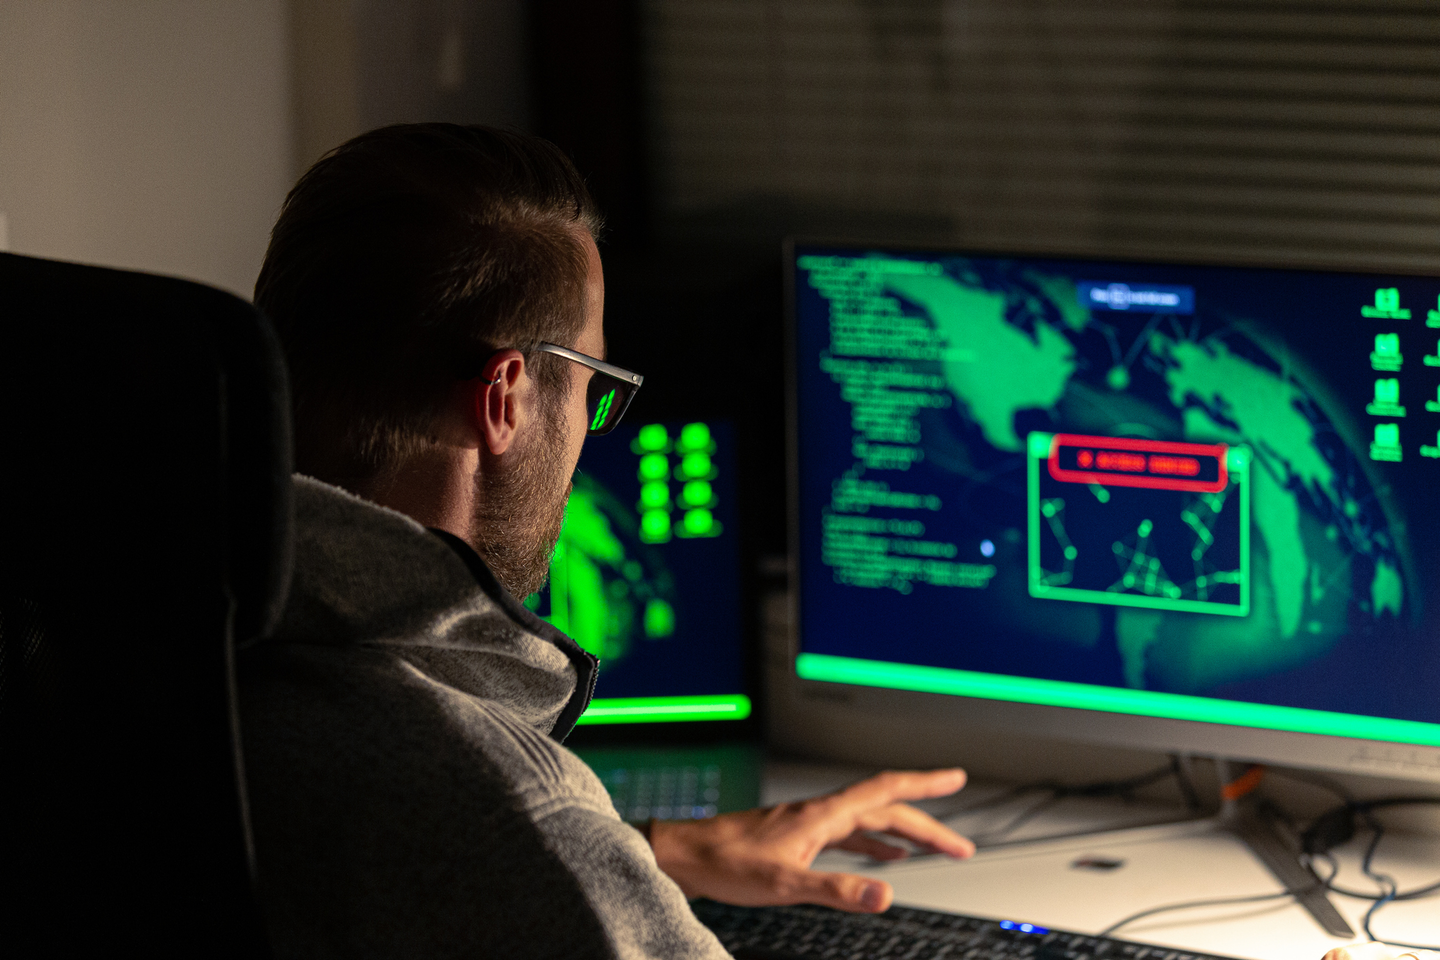 Small and medium-sized fleets have a more difficult time affording the advanced systems they need to monitor network traffic and detect possible intrusions.